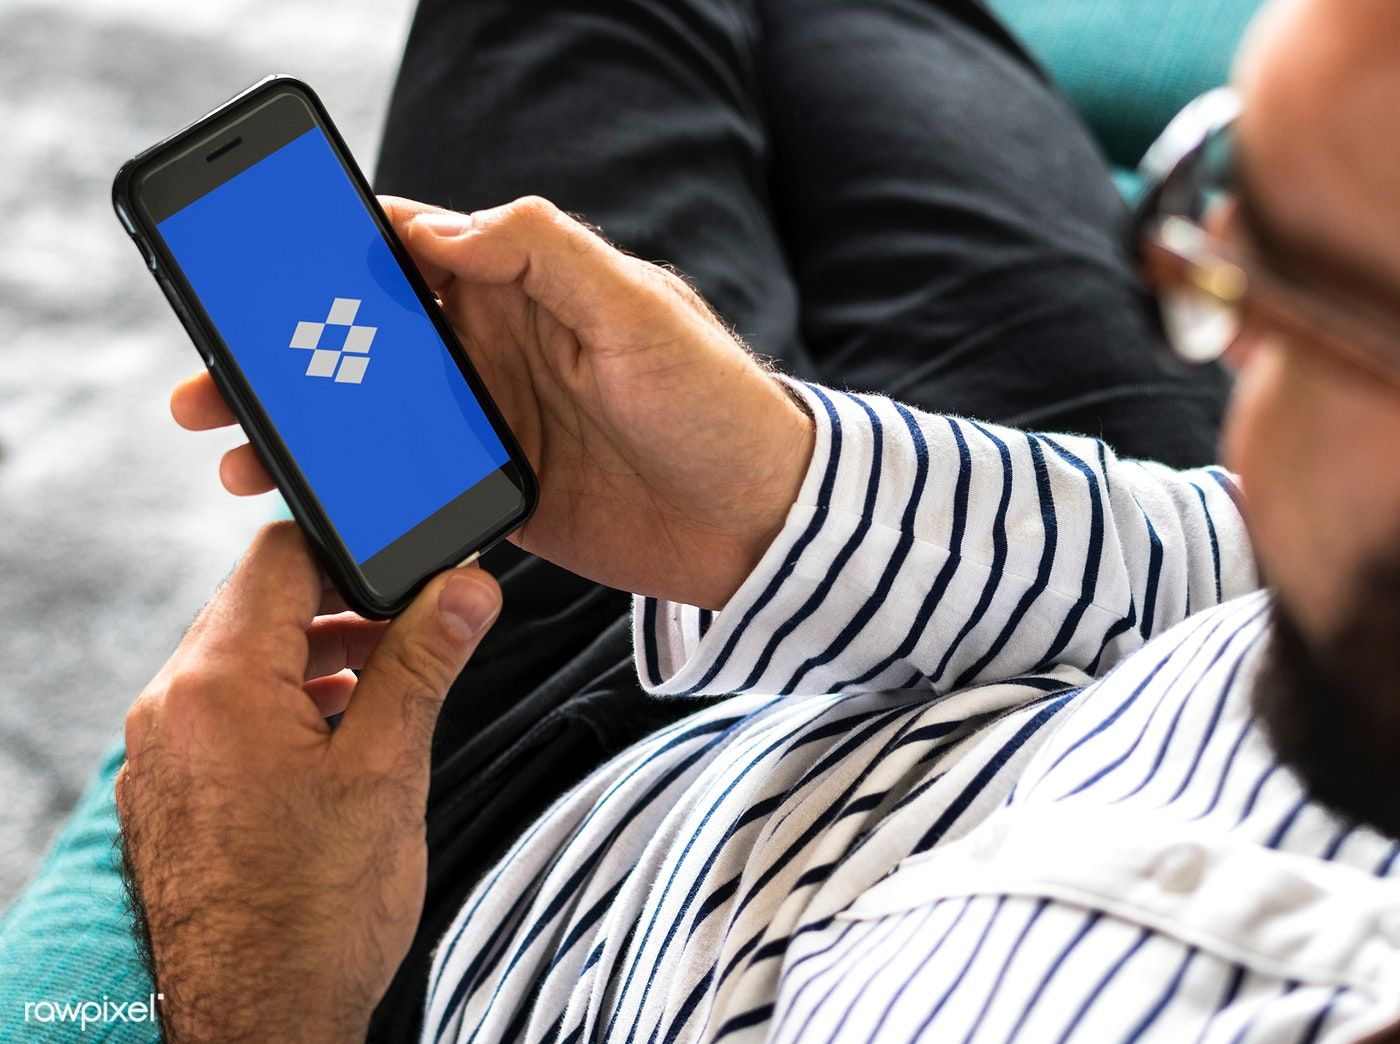 A person using dropbox application on a mobile phone